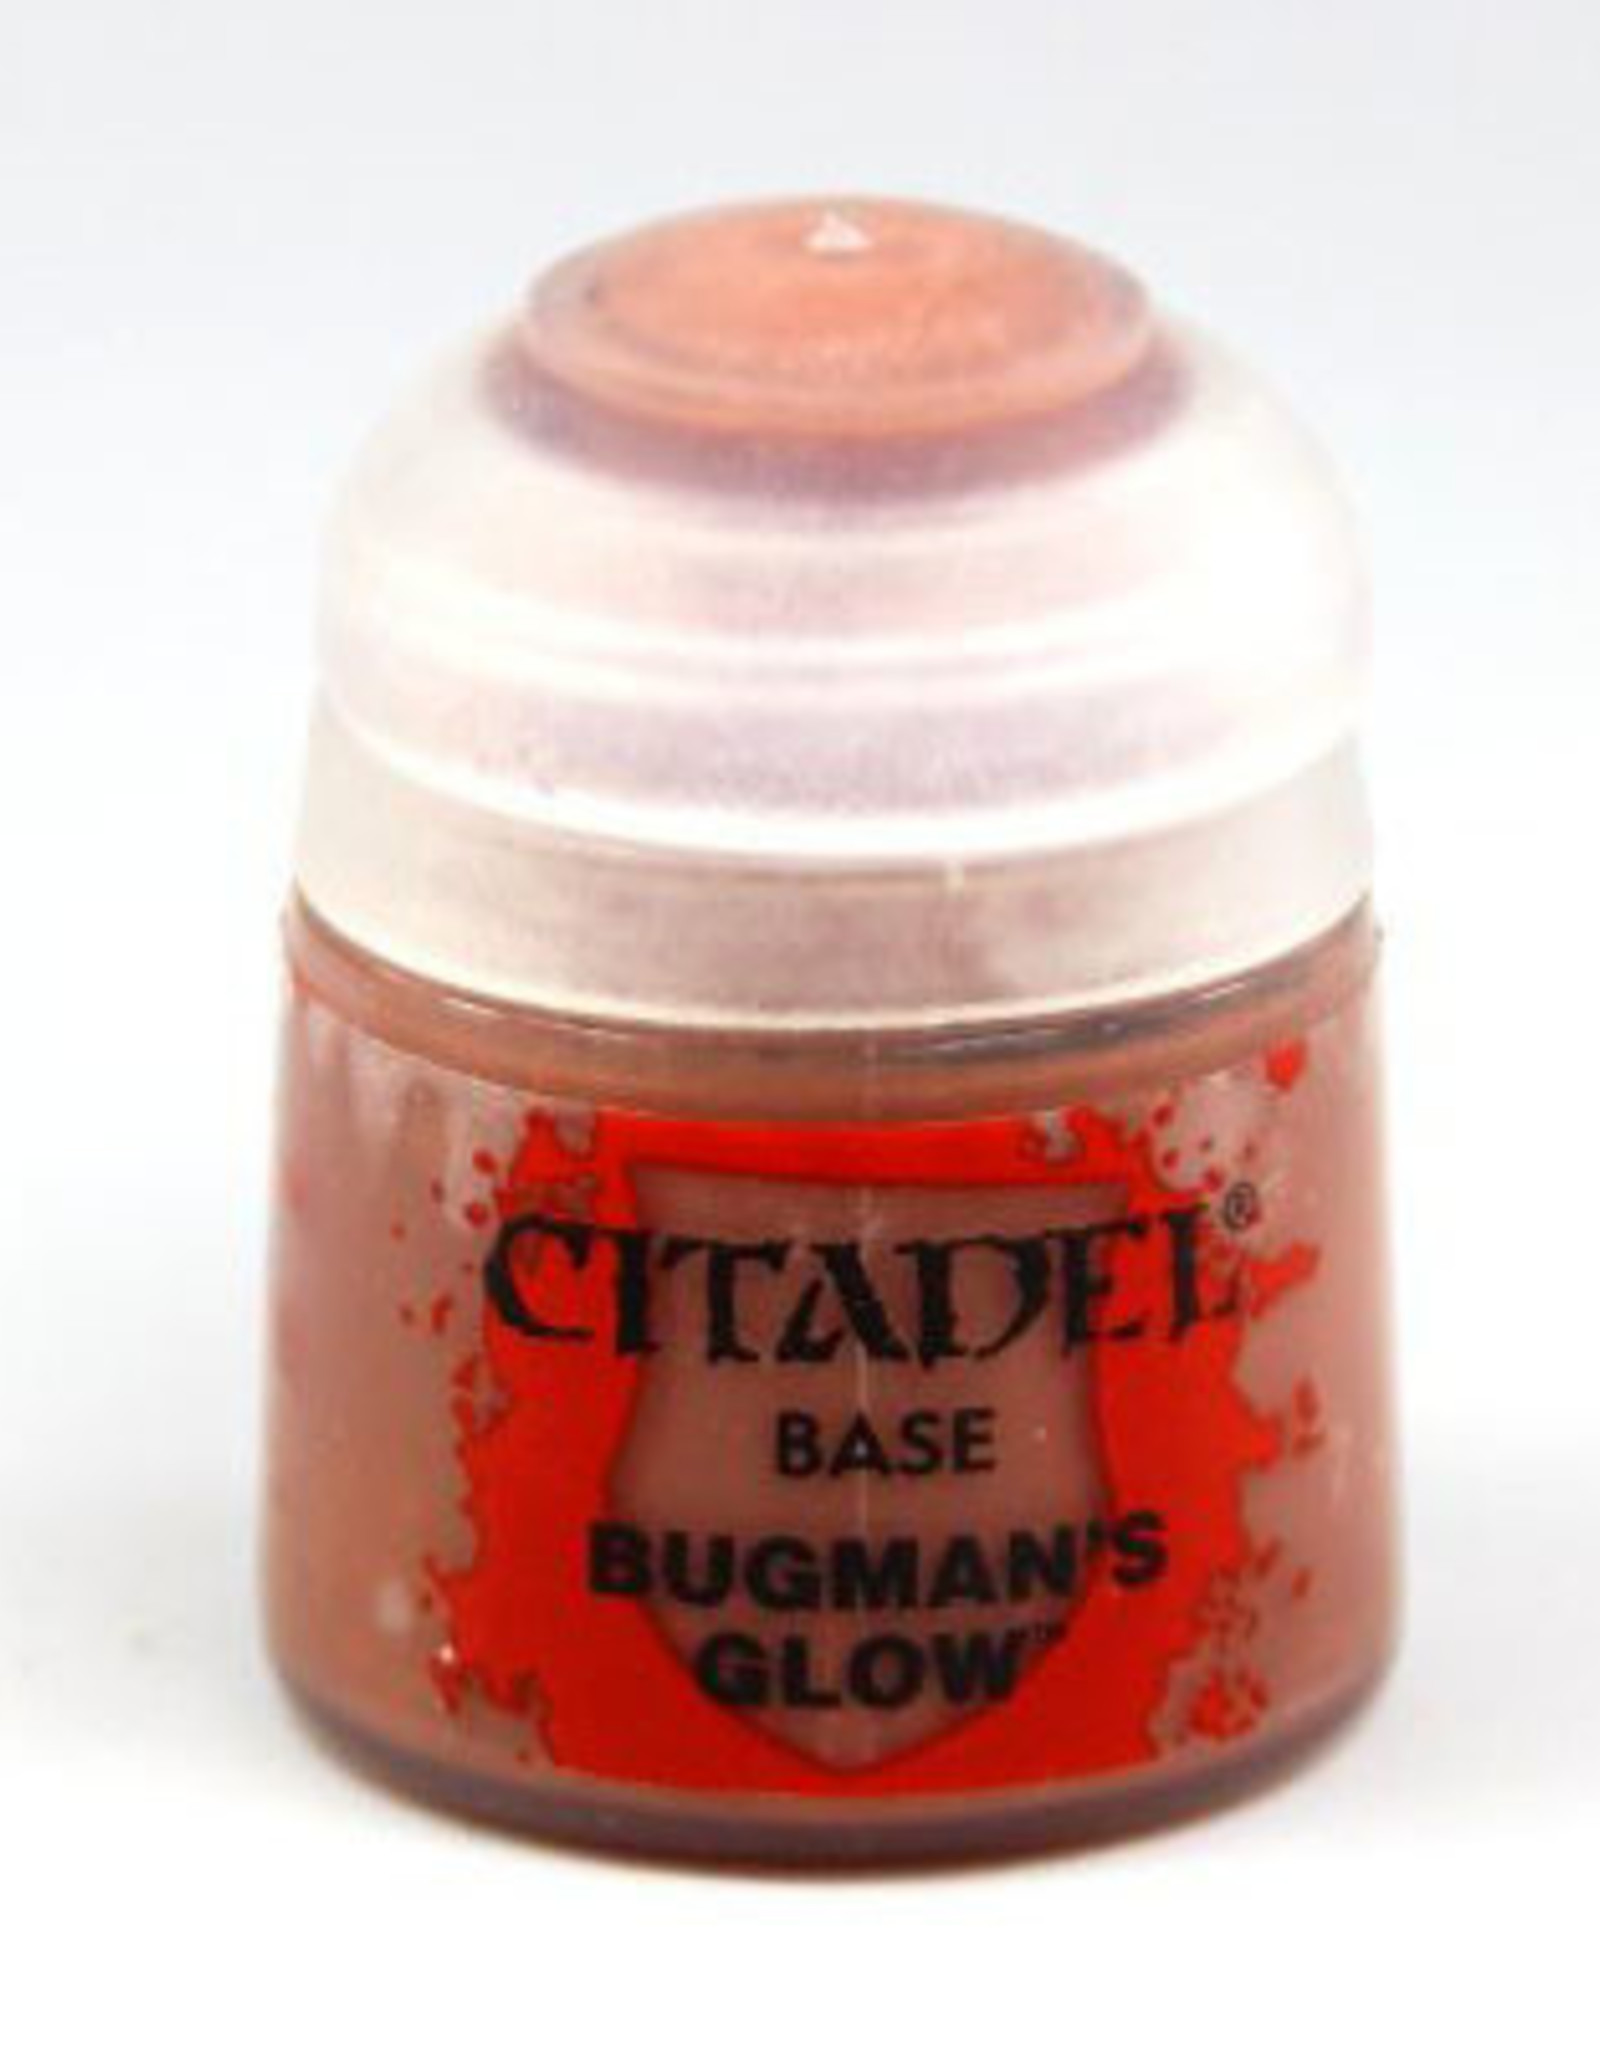 Games Workshop Citadel Paint: Base - Bugmans Glow